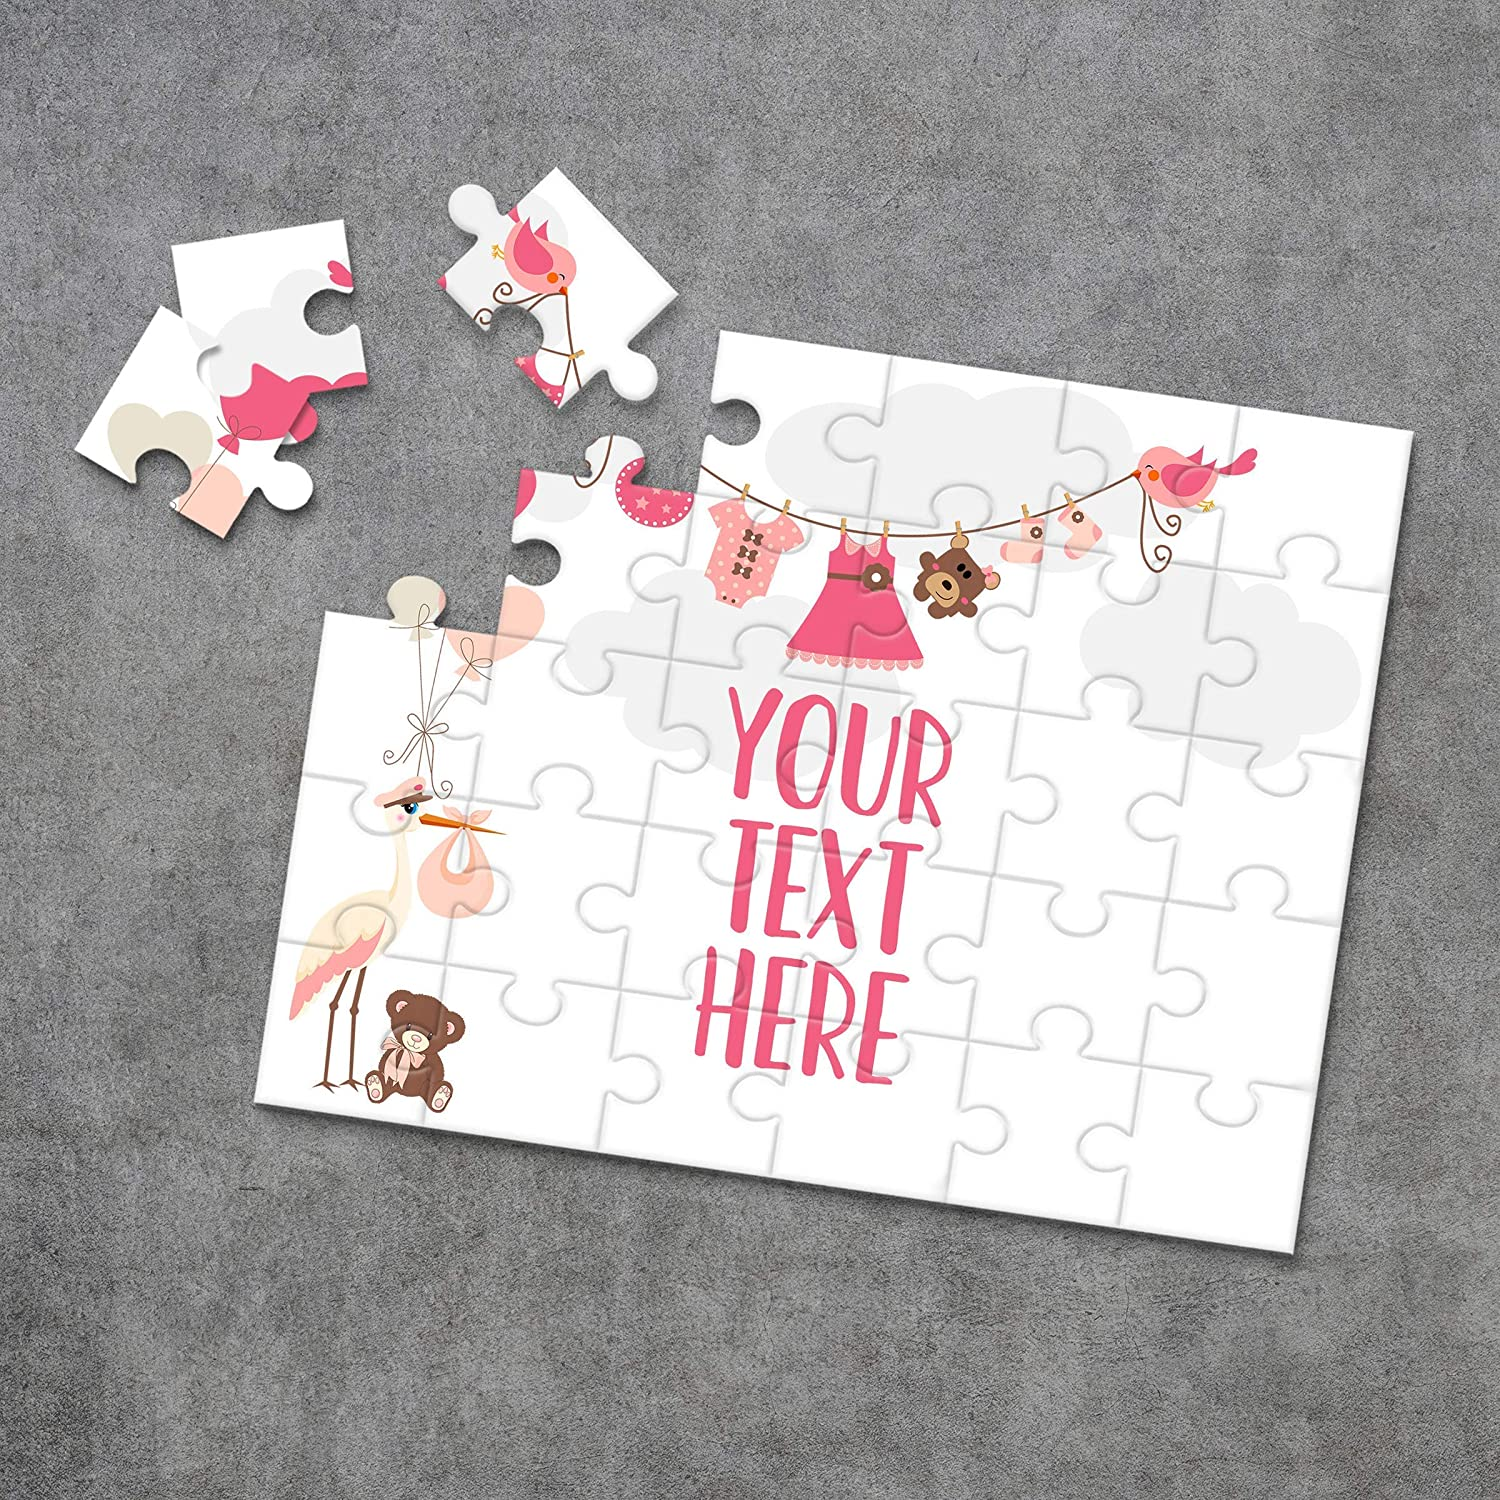 CYOP0252 Personalized Puzzle Pregnancy Announcement Wedding Announcement Custom Puzzle Announcement Ideas Create Your Own Puzzle